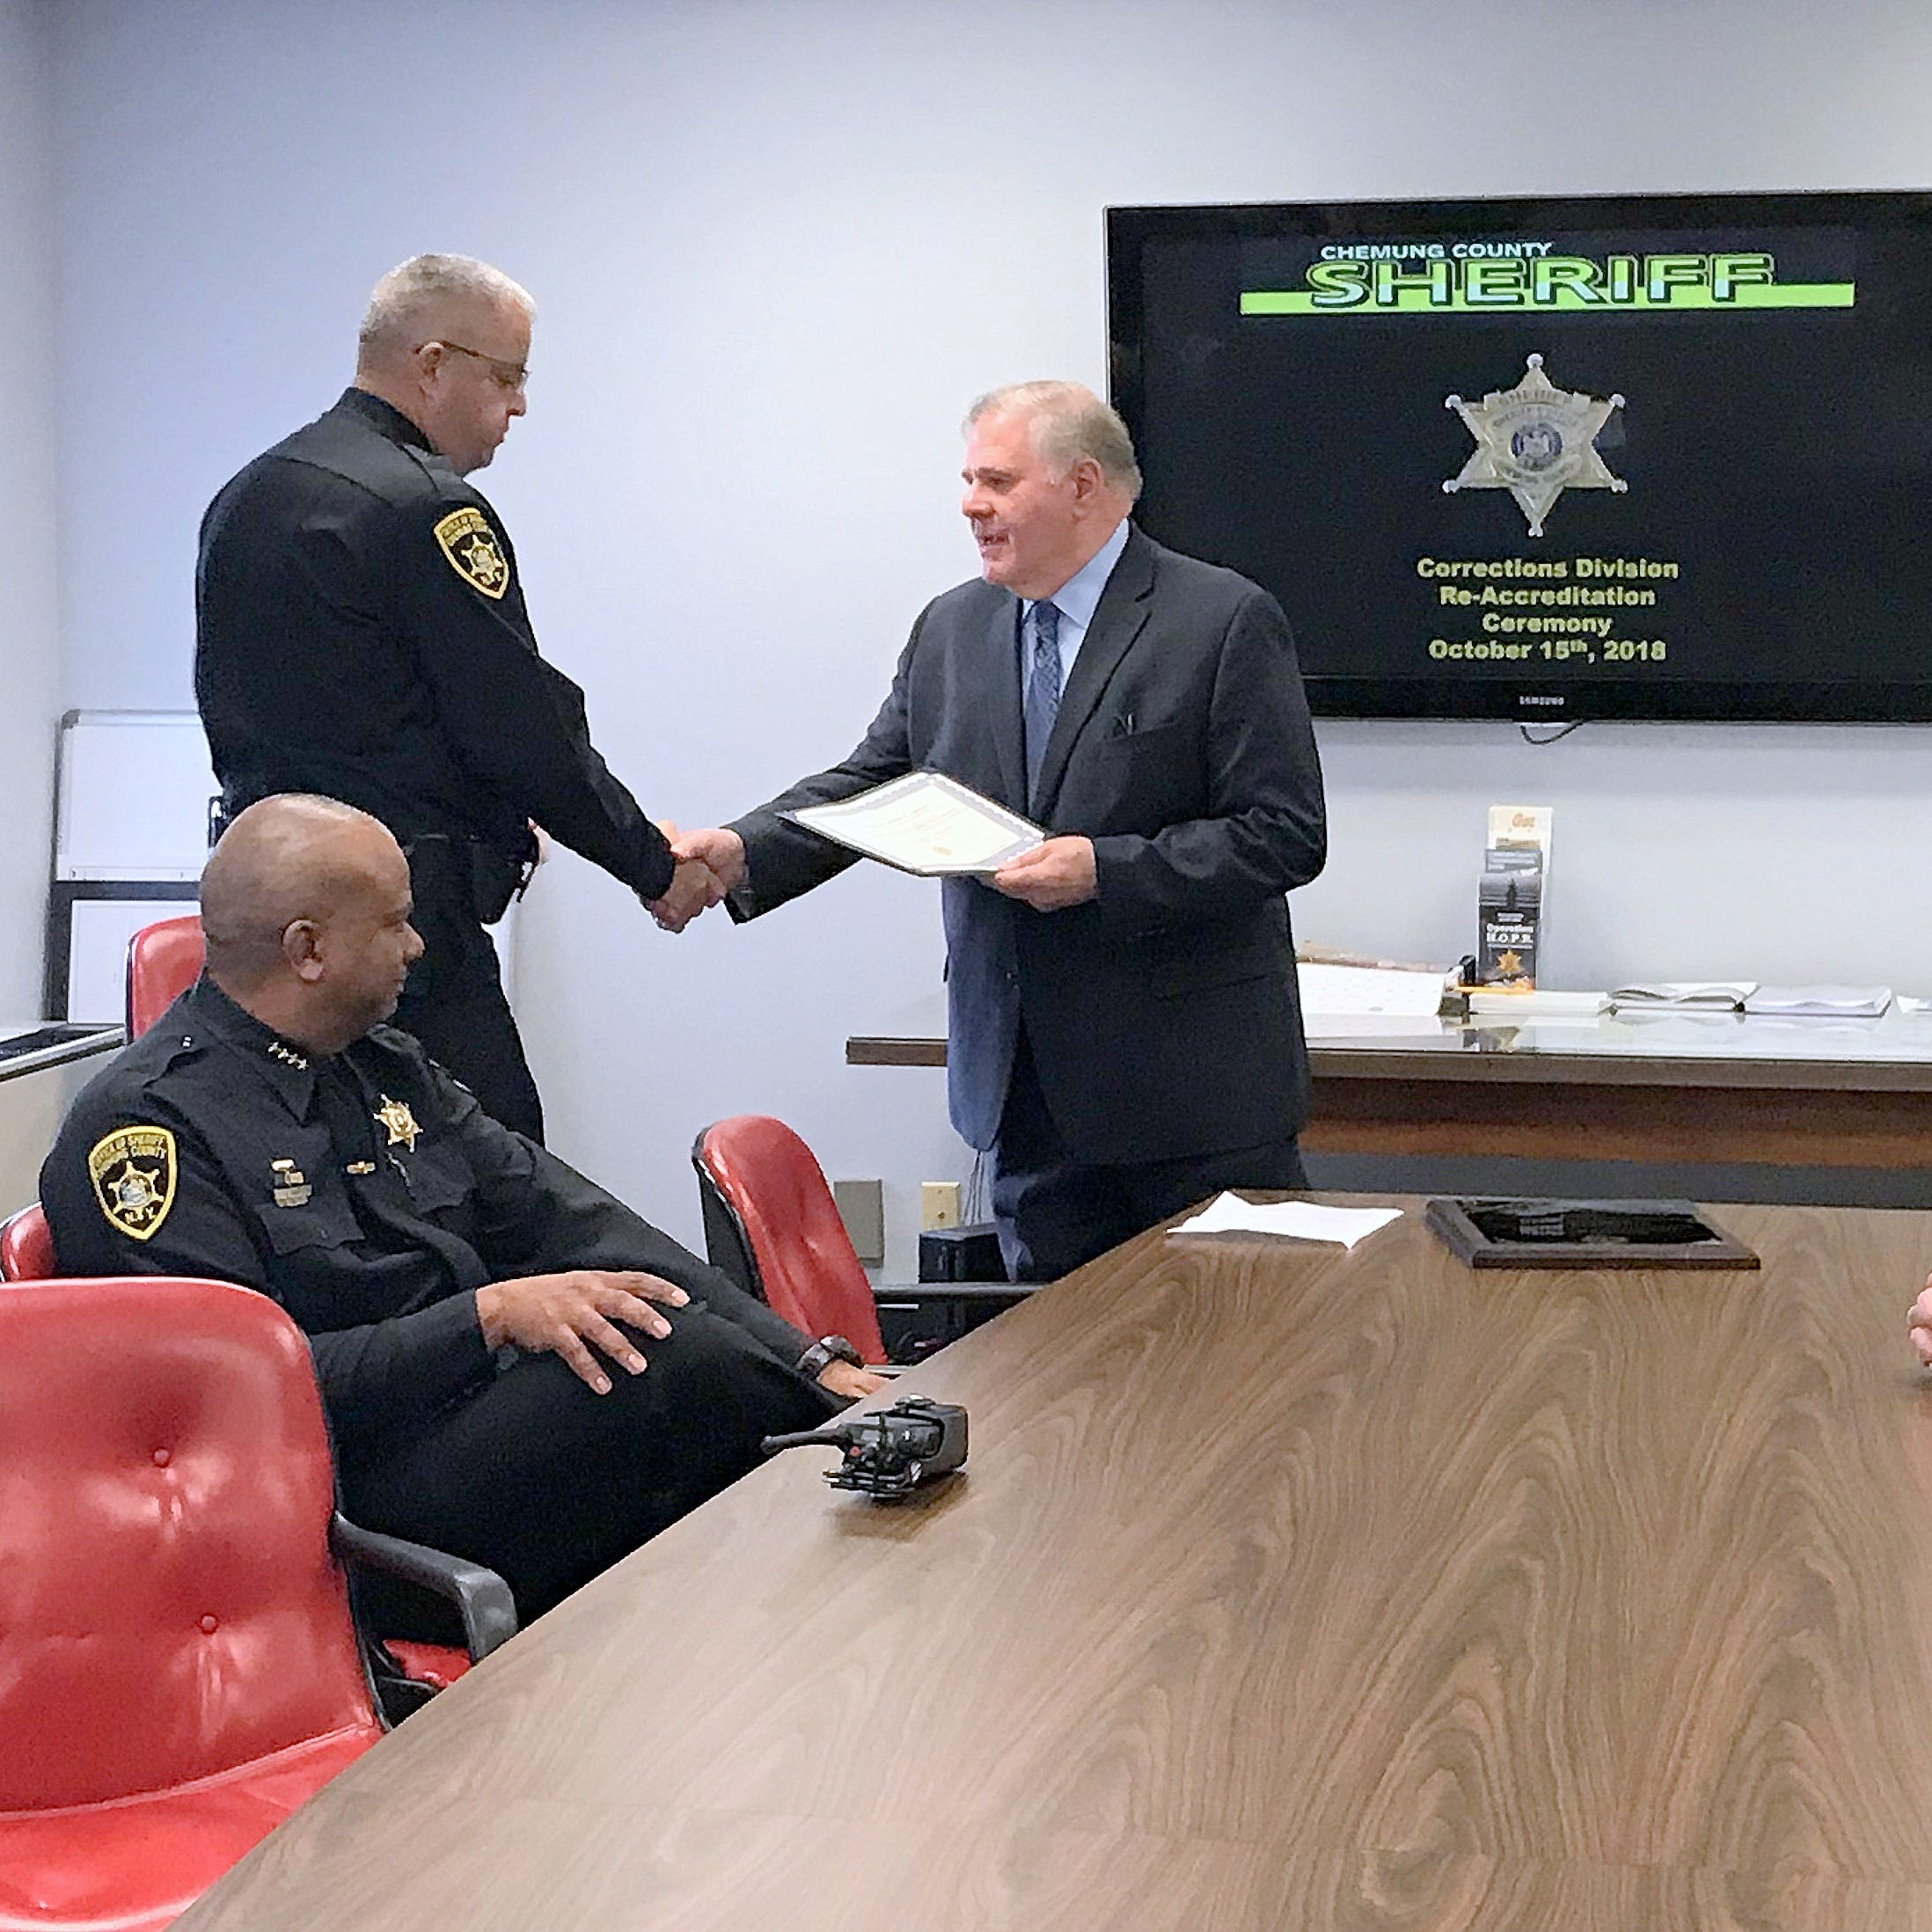 Chemung sheriff celebrates jail accreditation